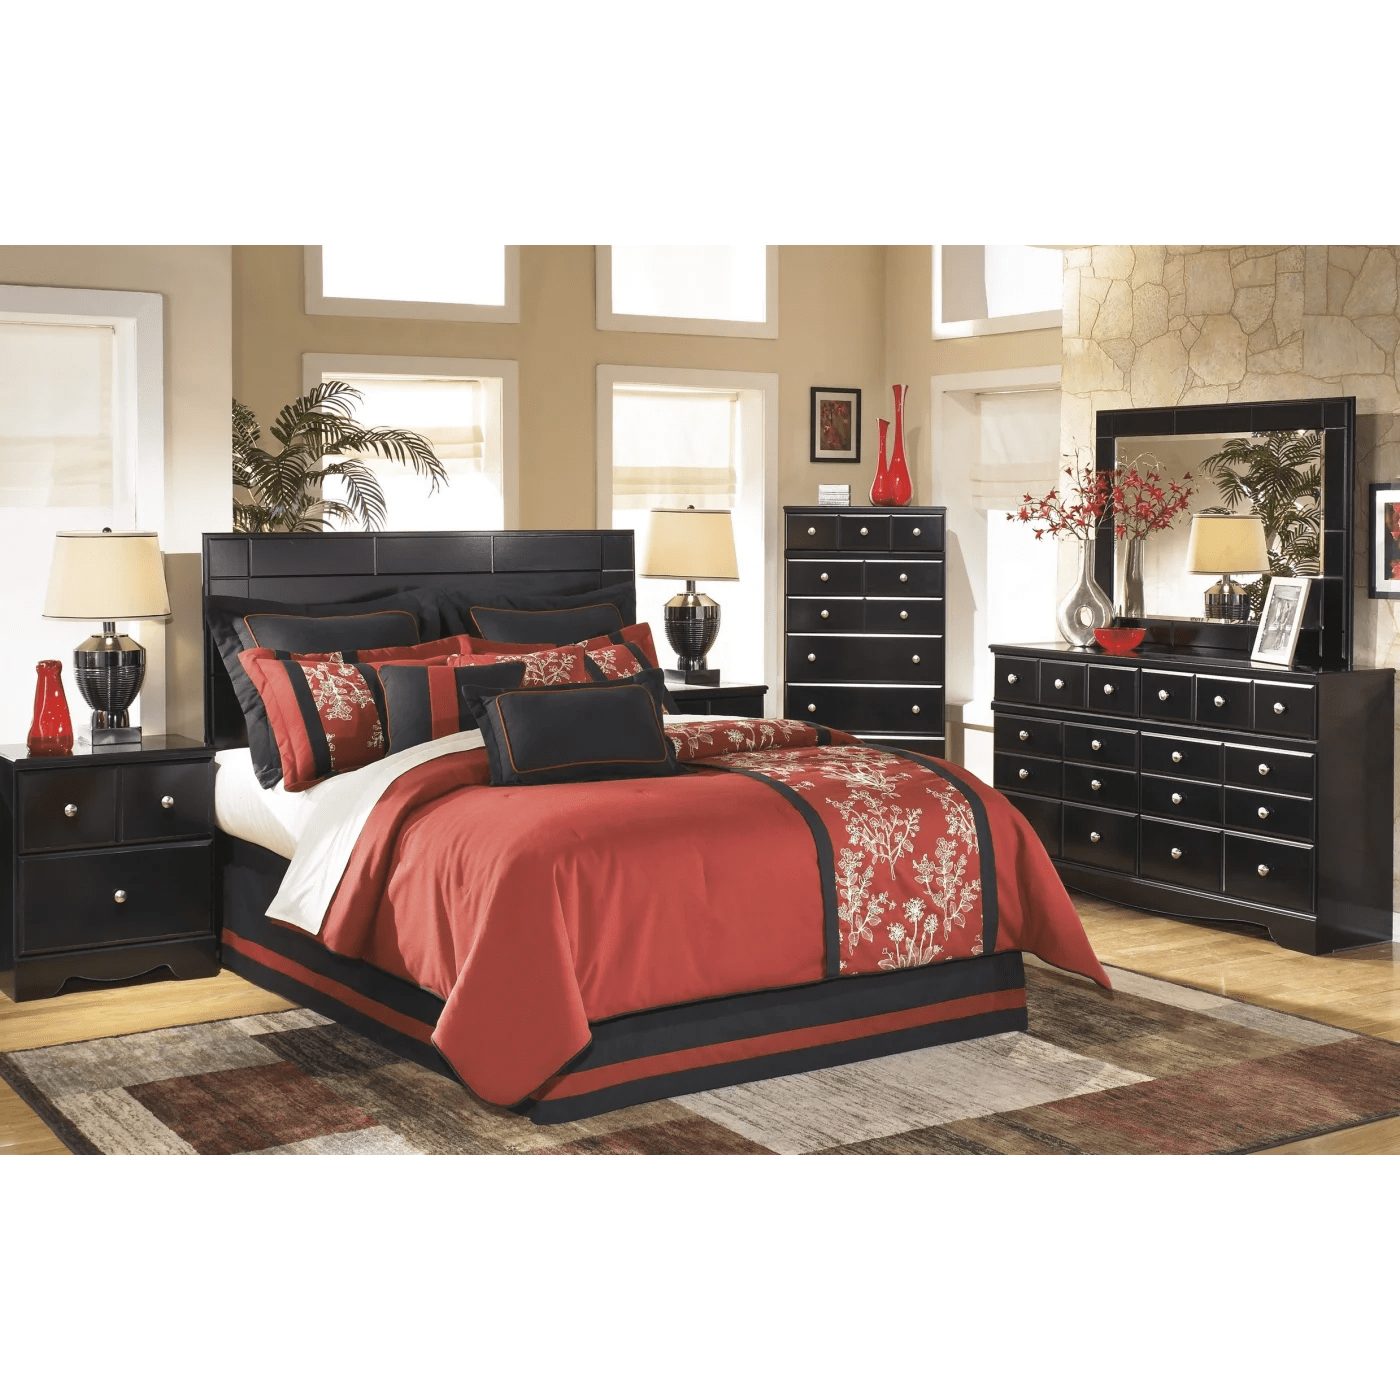 Signature Design By Ashley Shay Almost Black 4 Piece Queen Panel Bedroom Set Amp Reviews